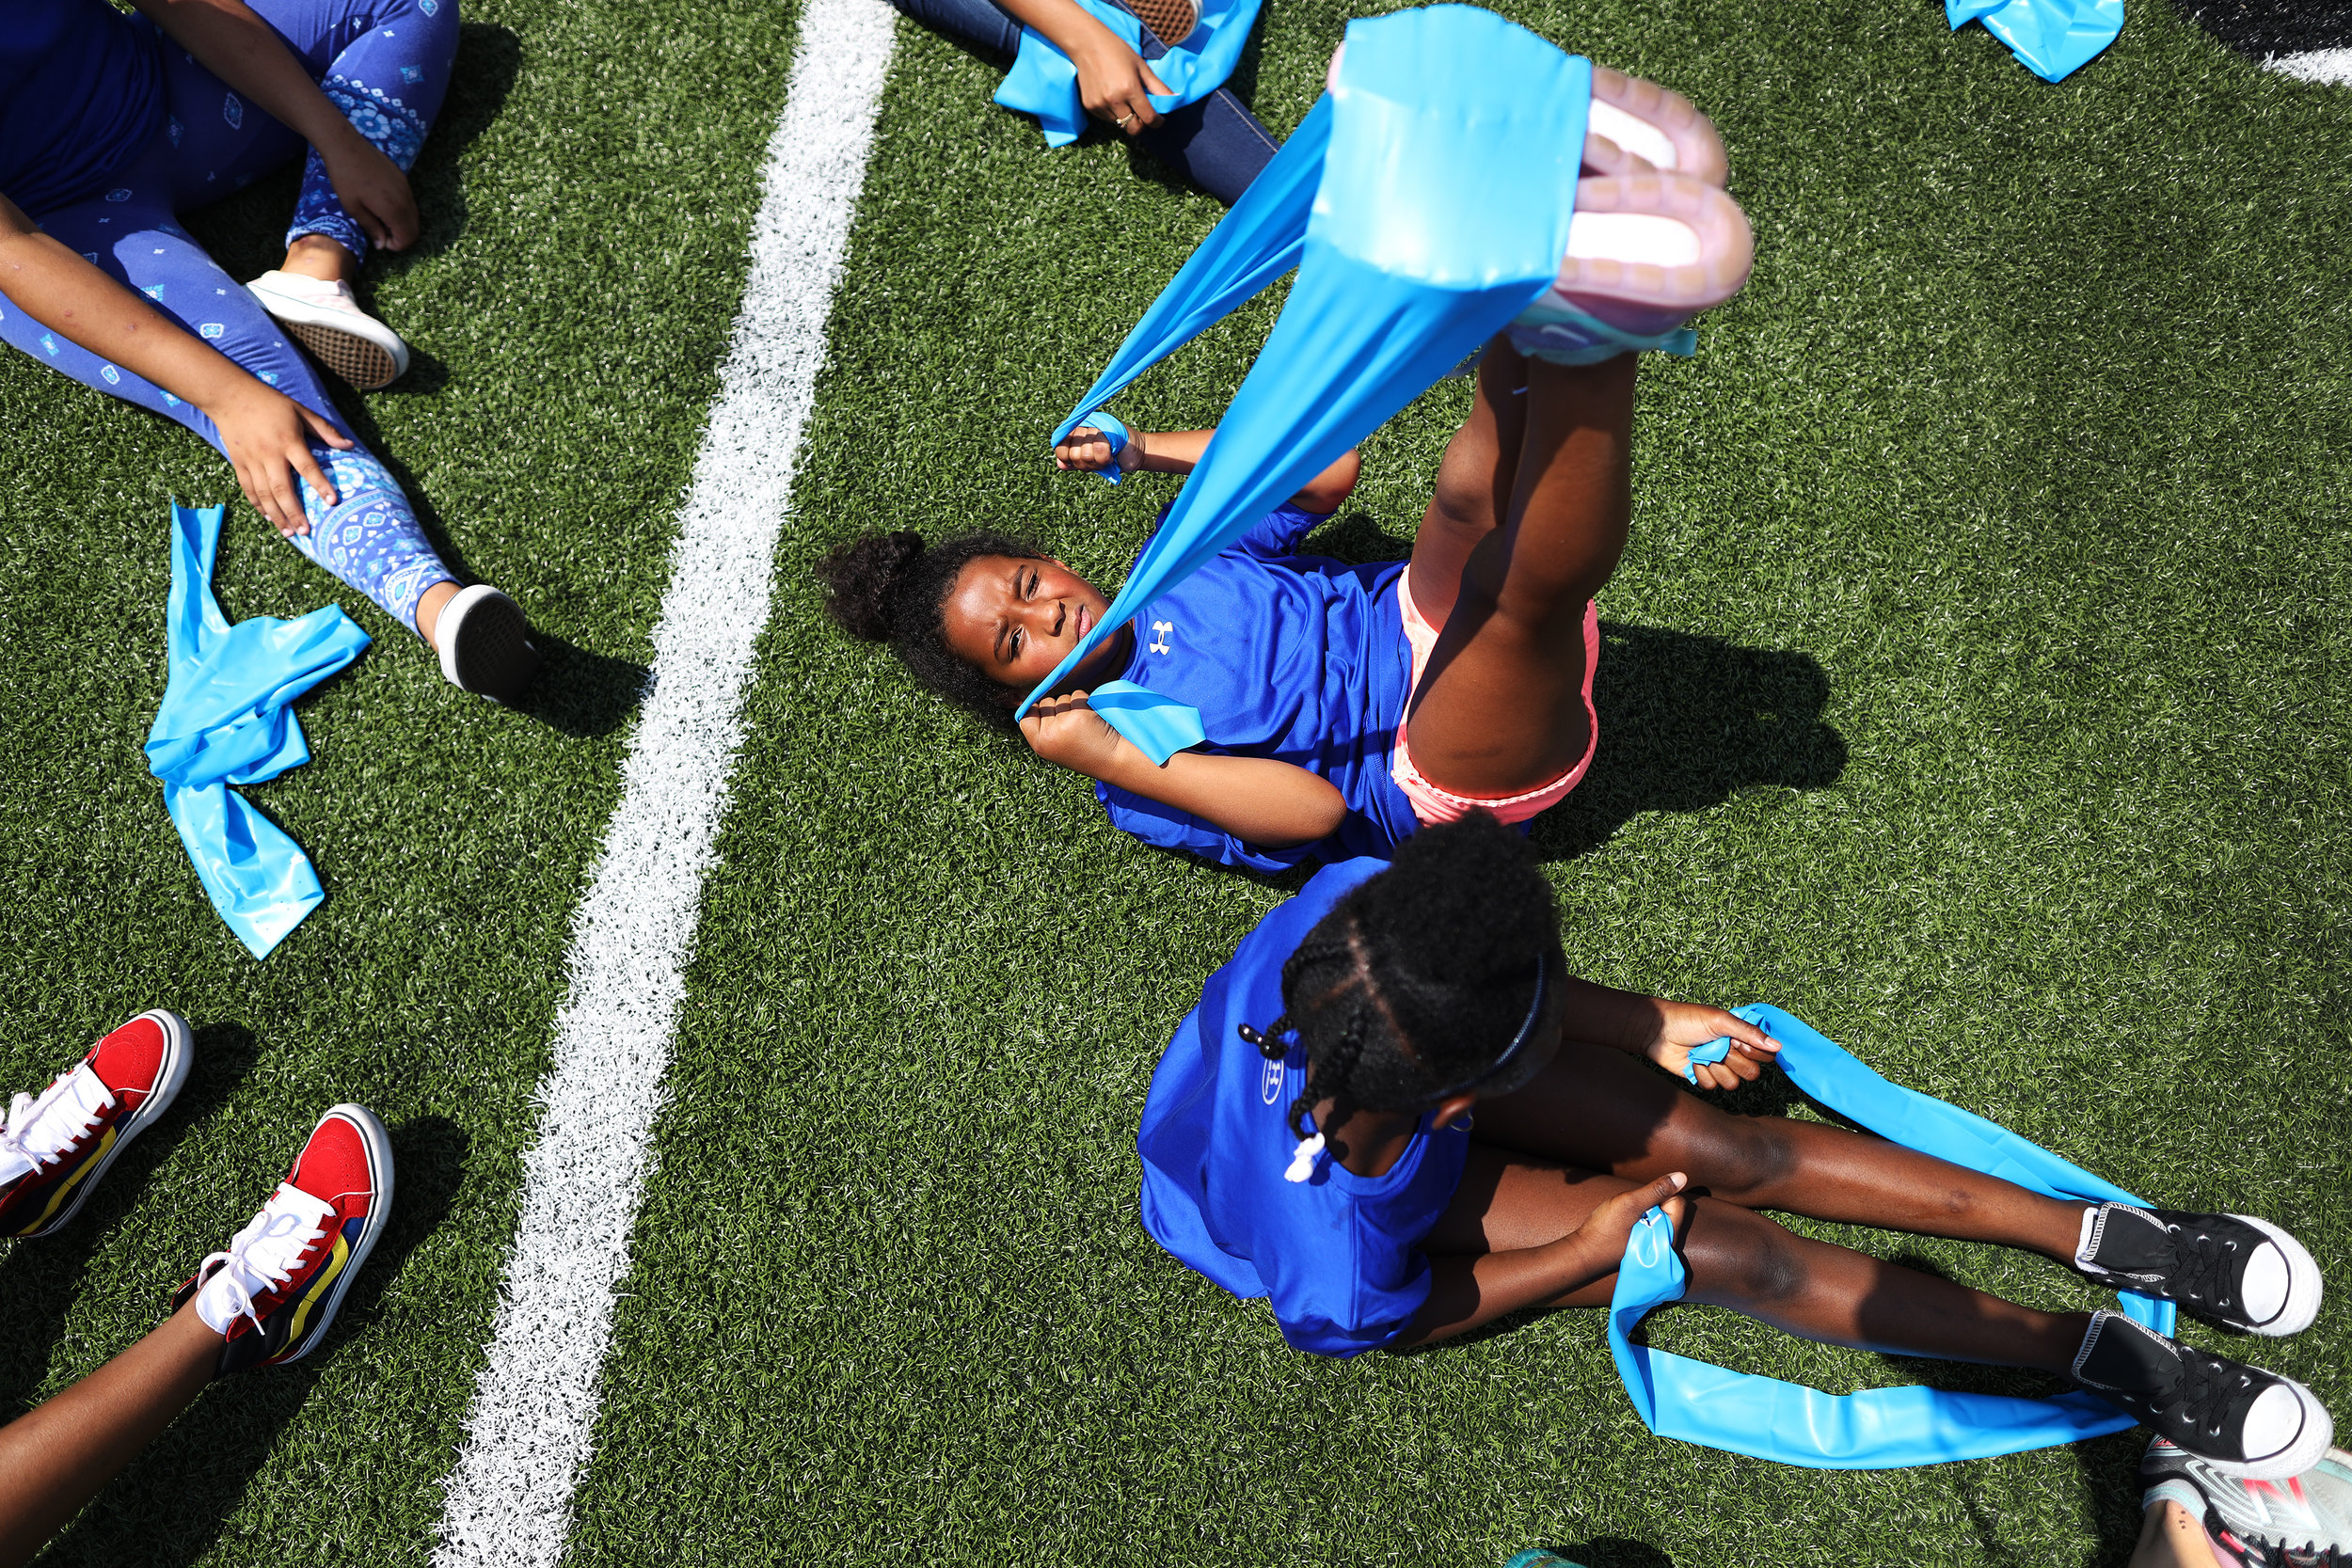 Children learn how to properly stretch during the Boston Police Olympics in Alumni Stadium. The Boys and Girls Clubs of Boston partnered with Boston Police to provide almost 300 children summer programming at Boston College. In its second year, BGCB and the BPD planned a full day of soccer, football, relay races, tug-of-war and of course, ice cream.